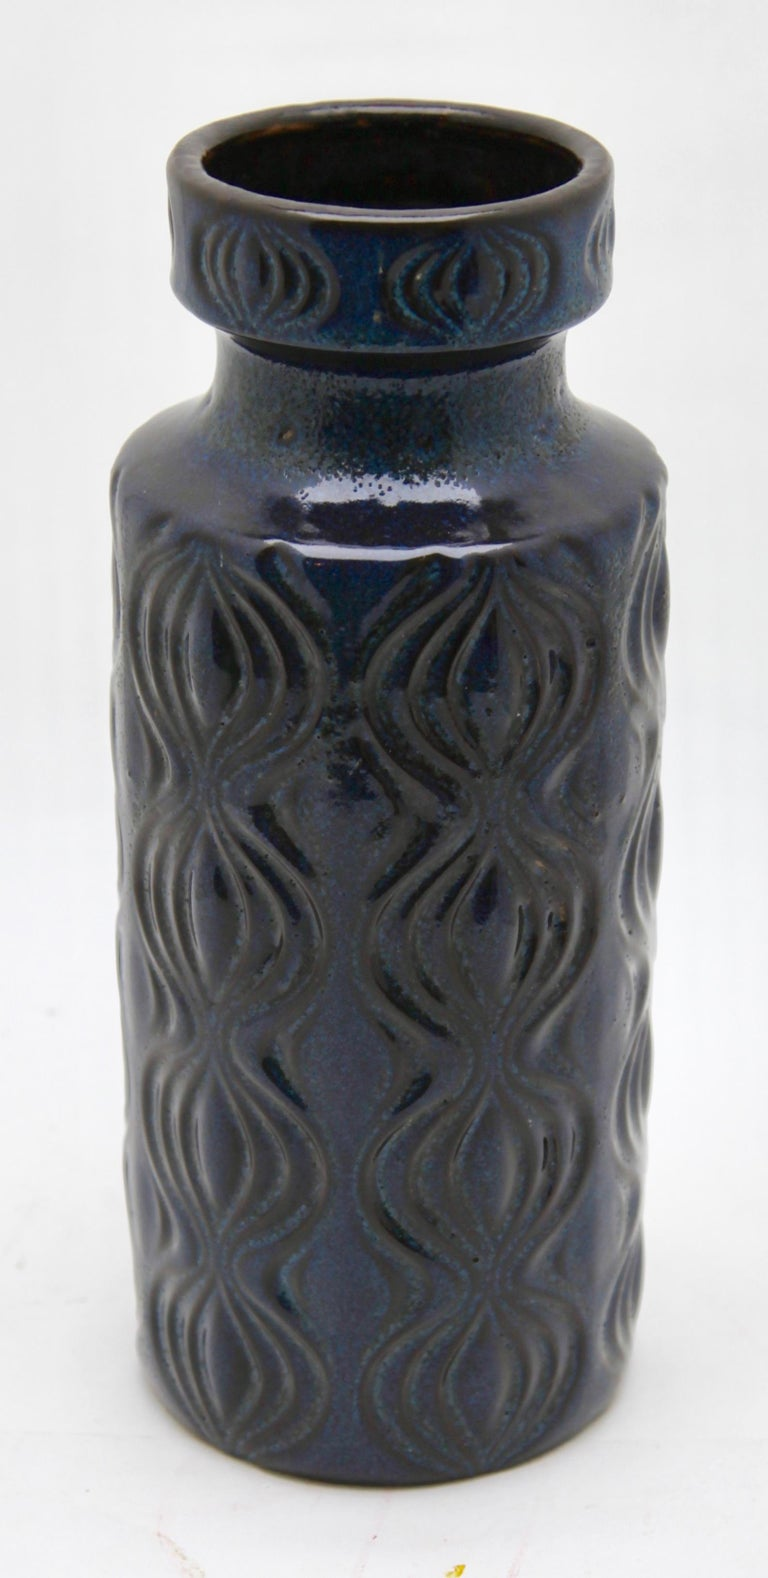 Scheurich Vases with Amsterdam Decor in Inky Turquoise on Black, Germany, 1970s For Sale 1